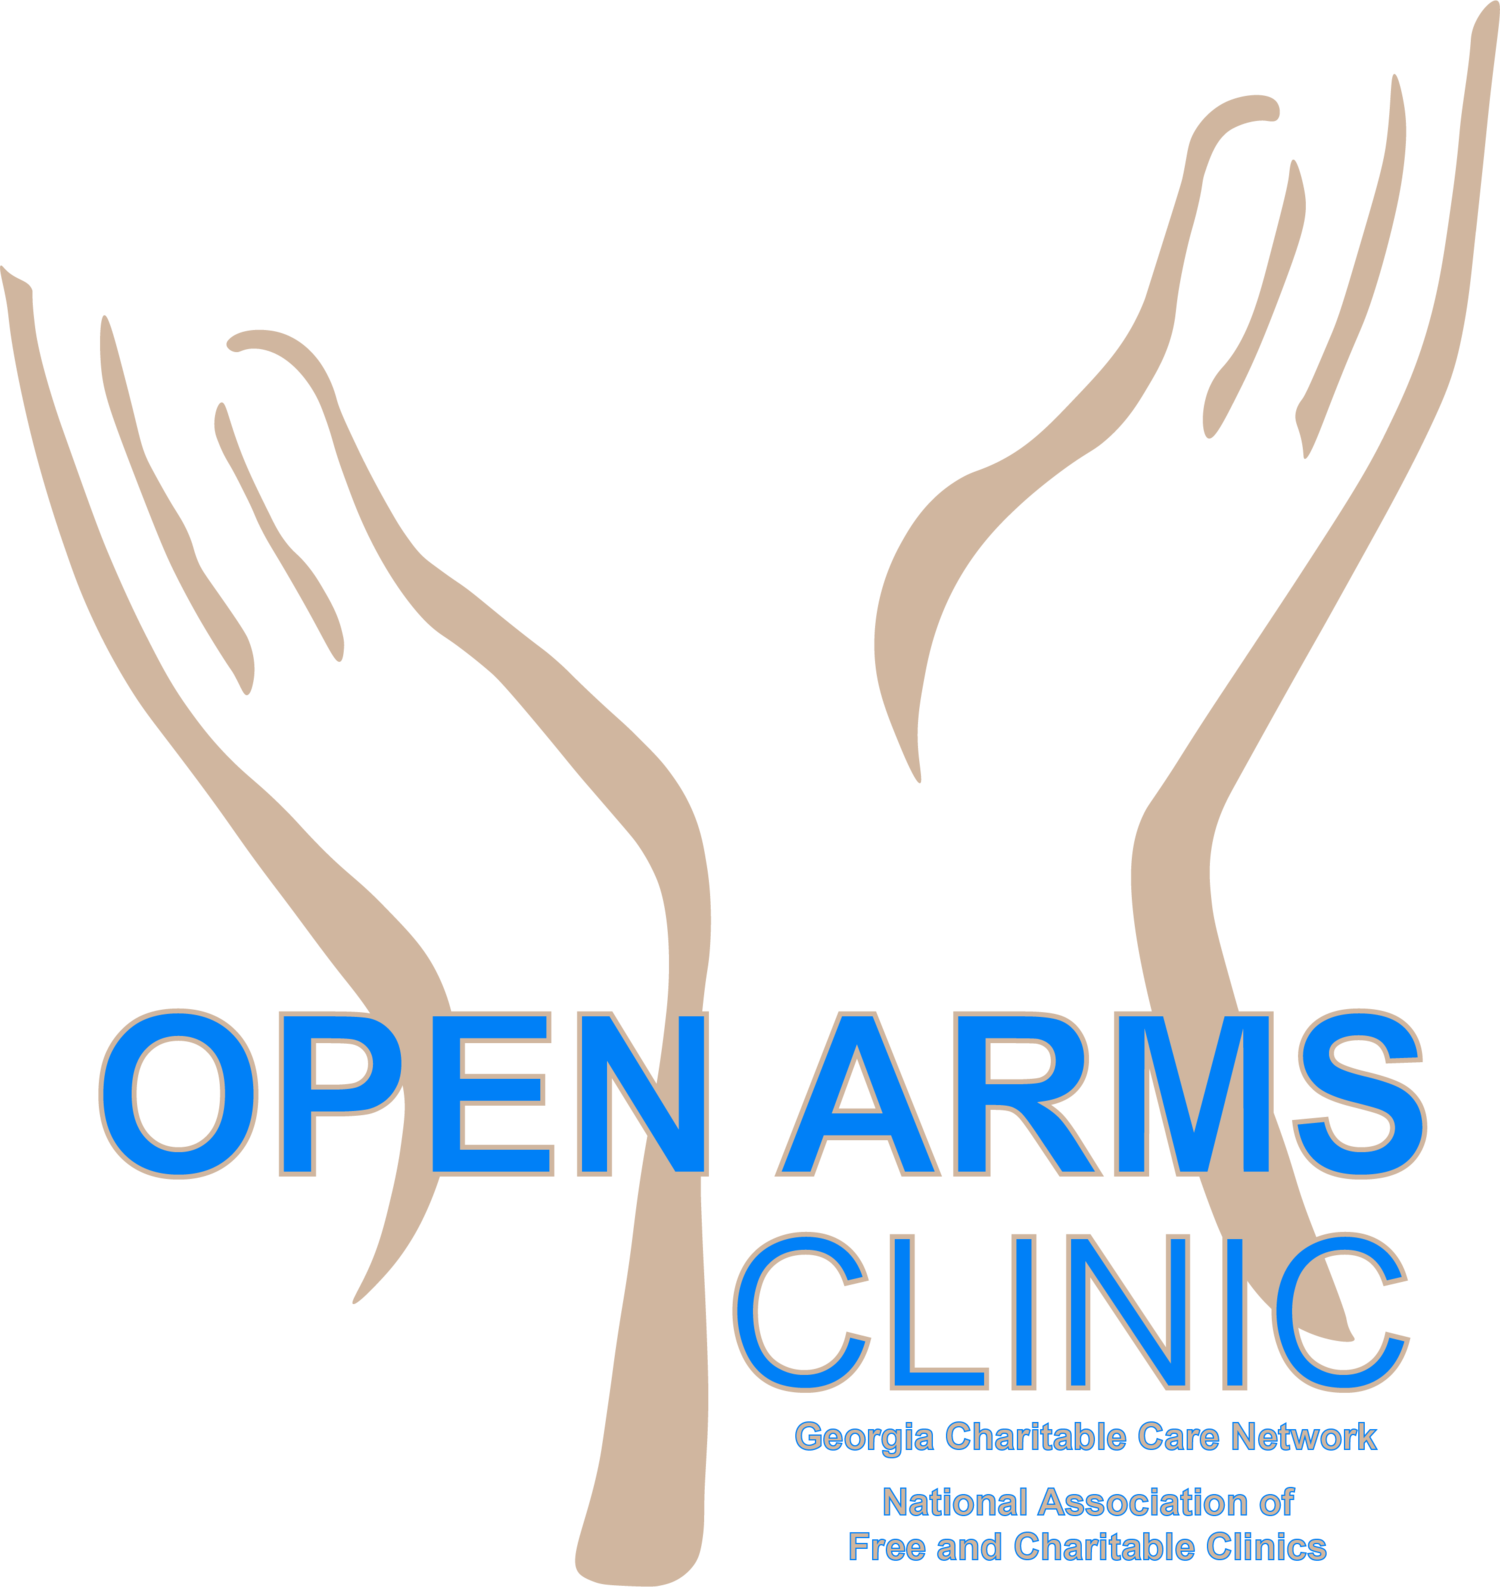 Open Arms Clinic